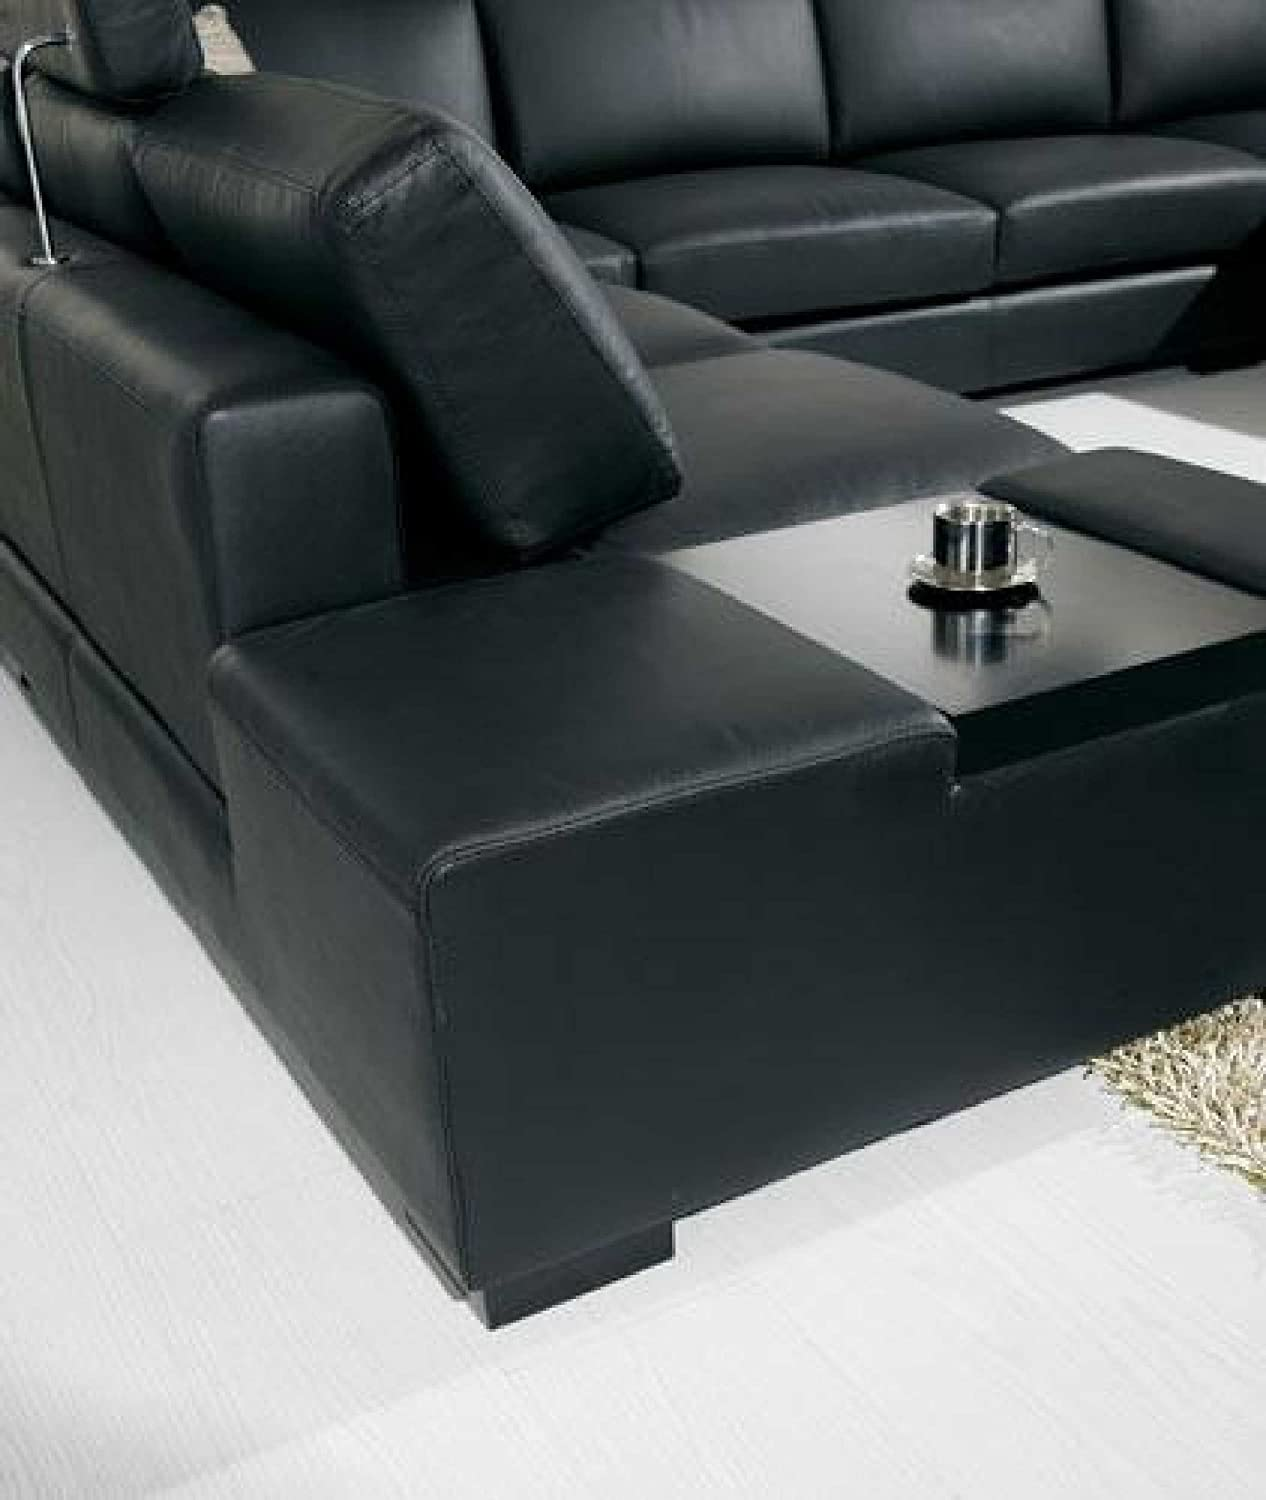 Amazon.com T35 - Black Bonded Leather Sectional Sofa with Headrests Kitchen u0026 Dining : black and white leather sectional - Sectionals, Sofas & Couches